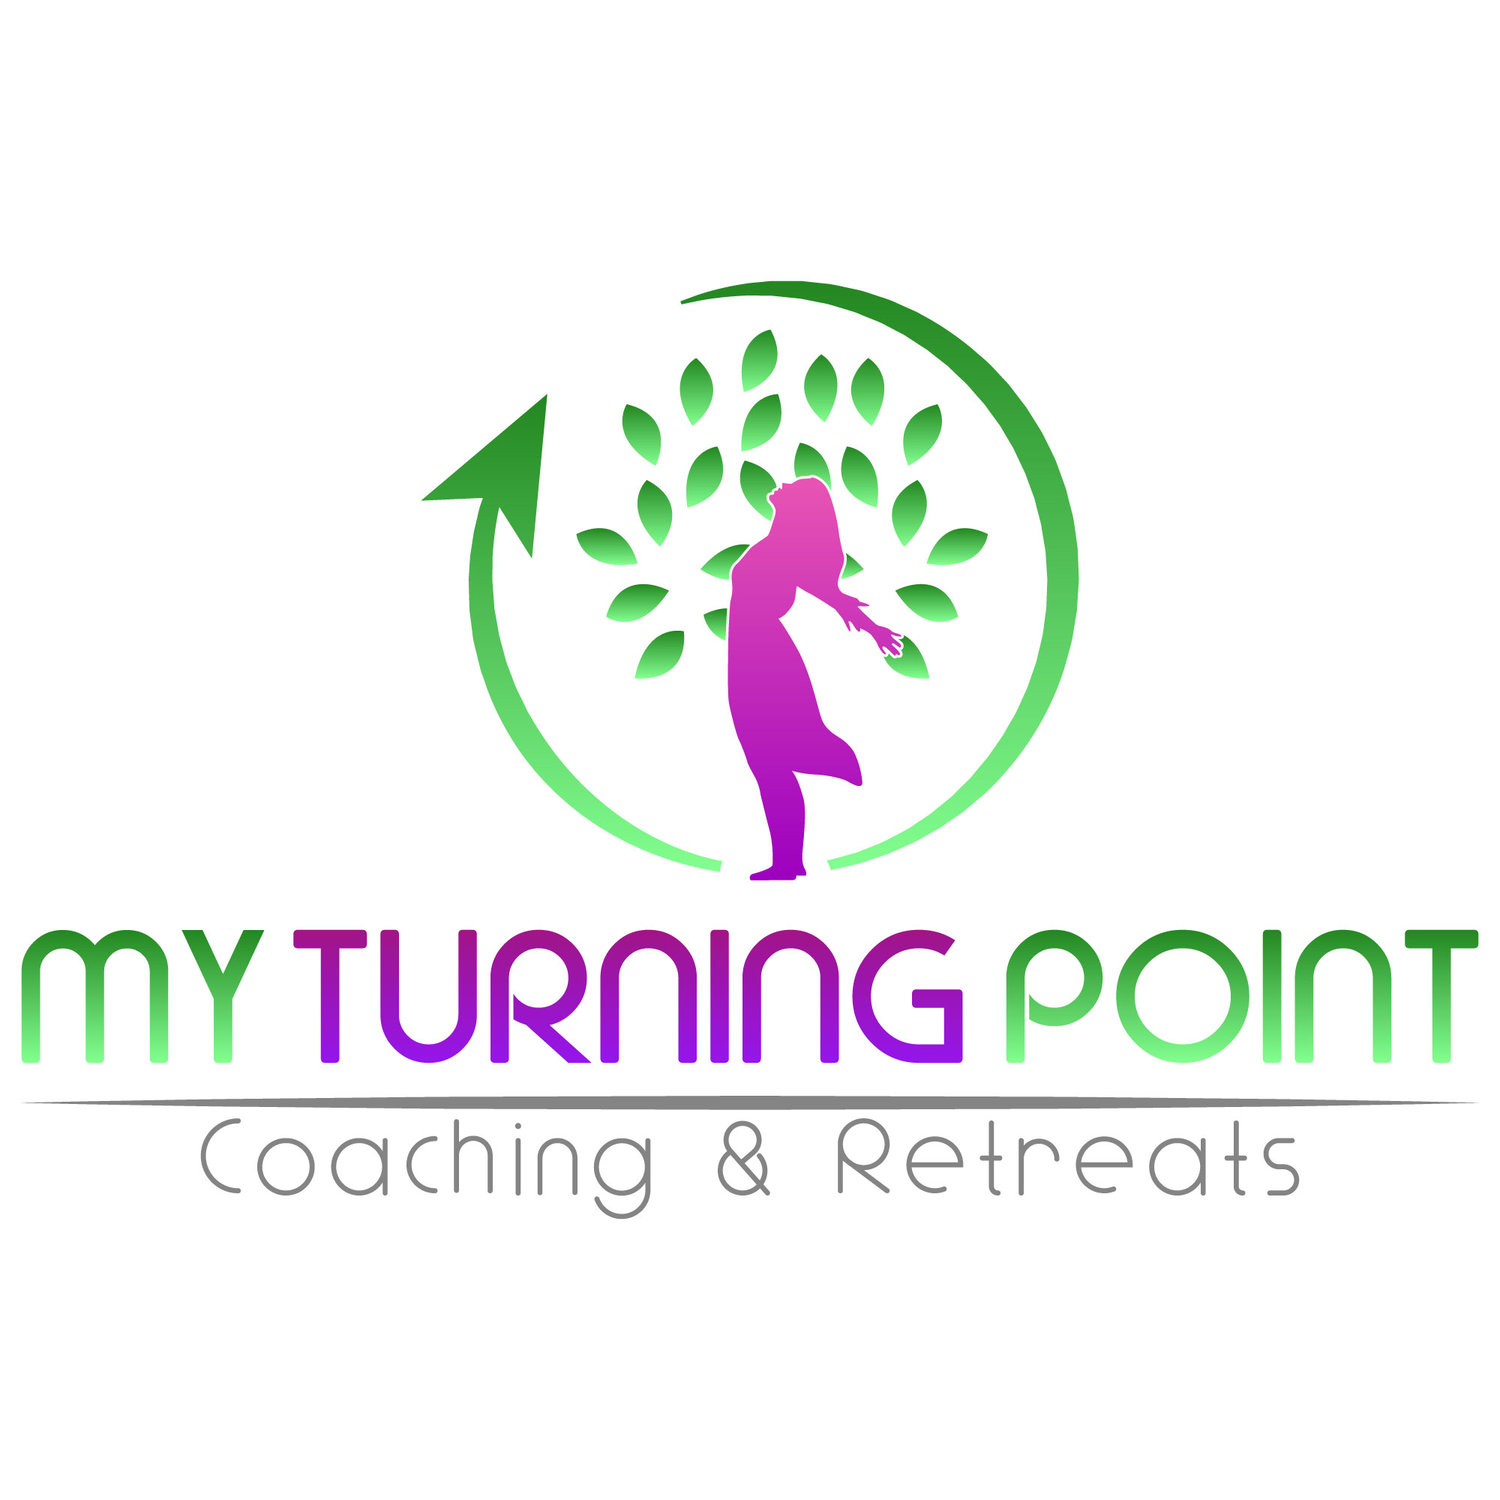 My Turning Point Coaching & Retreats